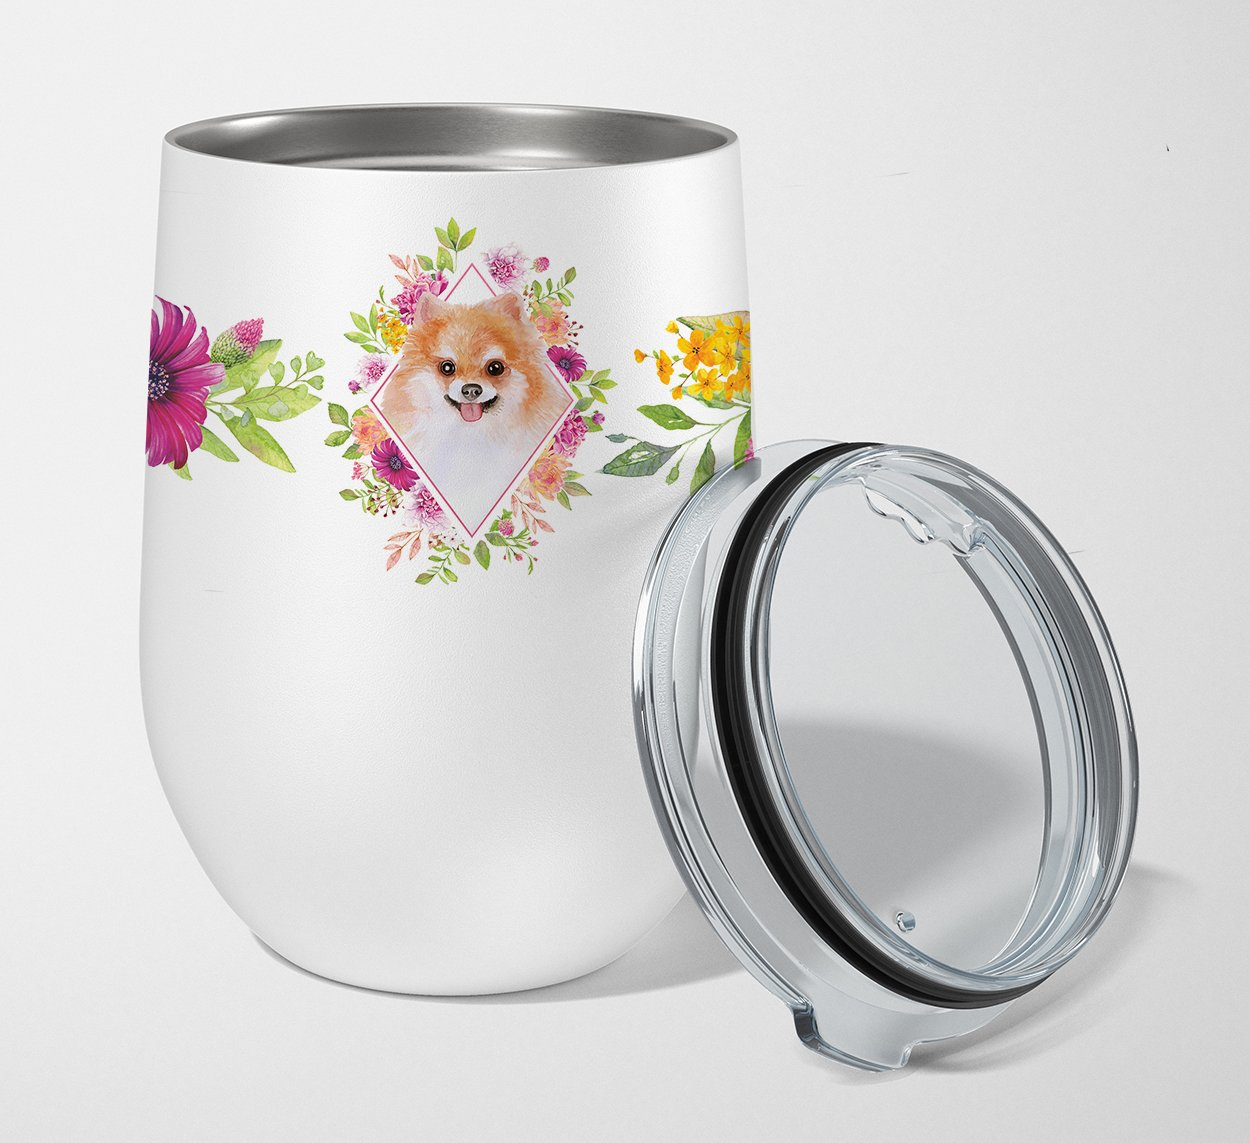 Pomeranian #1 Pink Flowers Stainless Steel 12 oz Stemless Wine Glass CK4169TBL12 by Caroline's Treasures